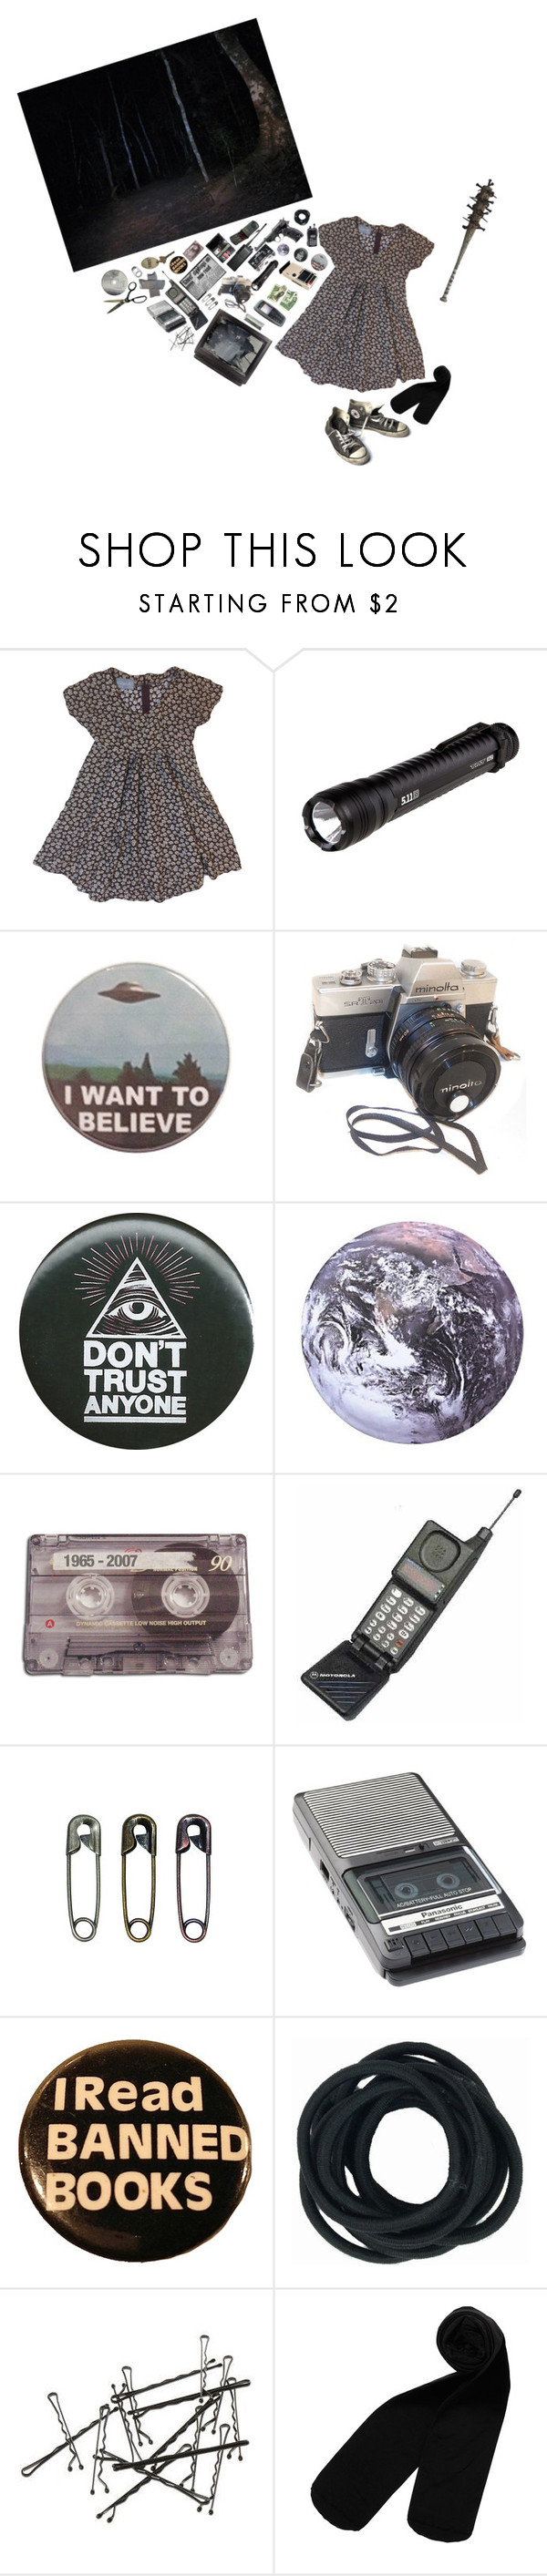 """""""Have you ever felt like you are being followed?"""" by black-and-white-hipster ❤ liked on Polyvore featuring 5.11 Tactical, Motorola, Kikkerland, Saints Row, CASSETTE, Tim Holtz, Panasonic, Monki and Converse"""